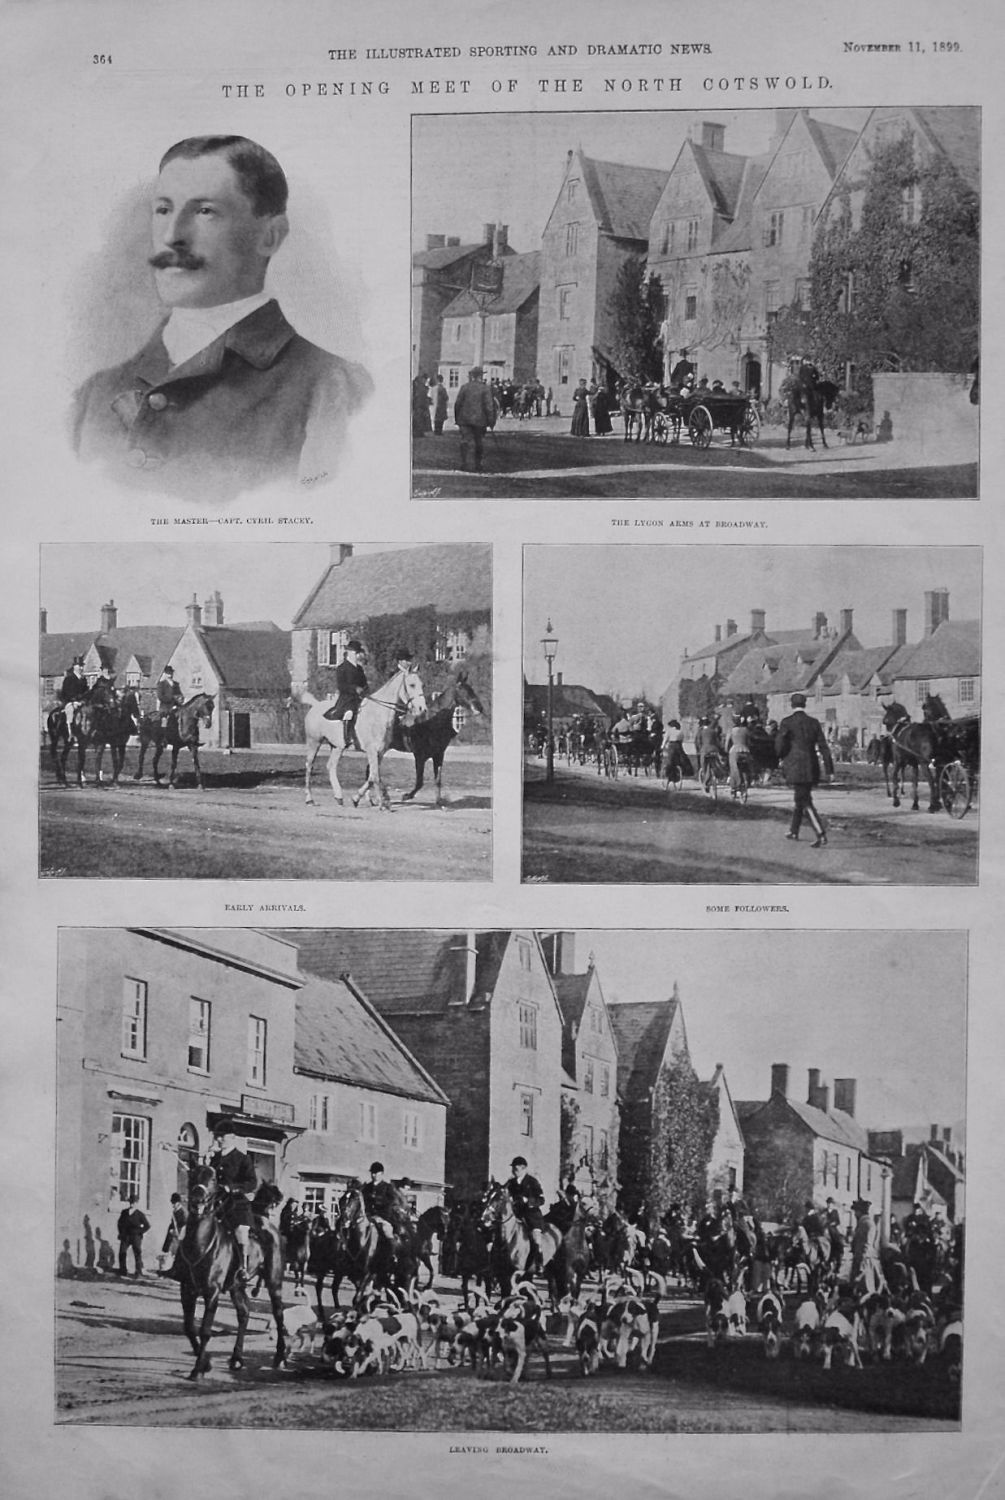 Opening Meet of the North Cotswold. 1899